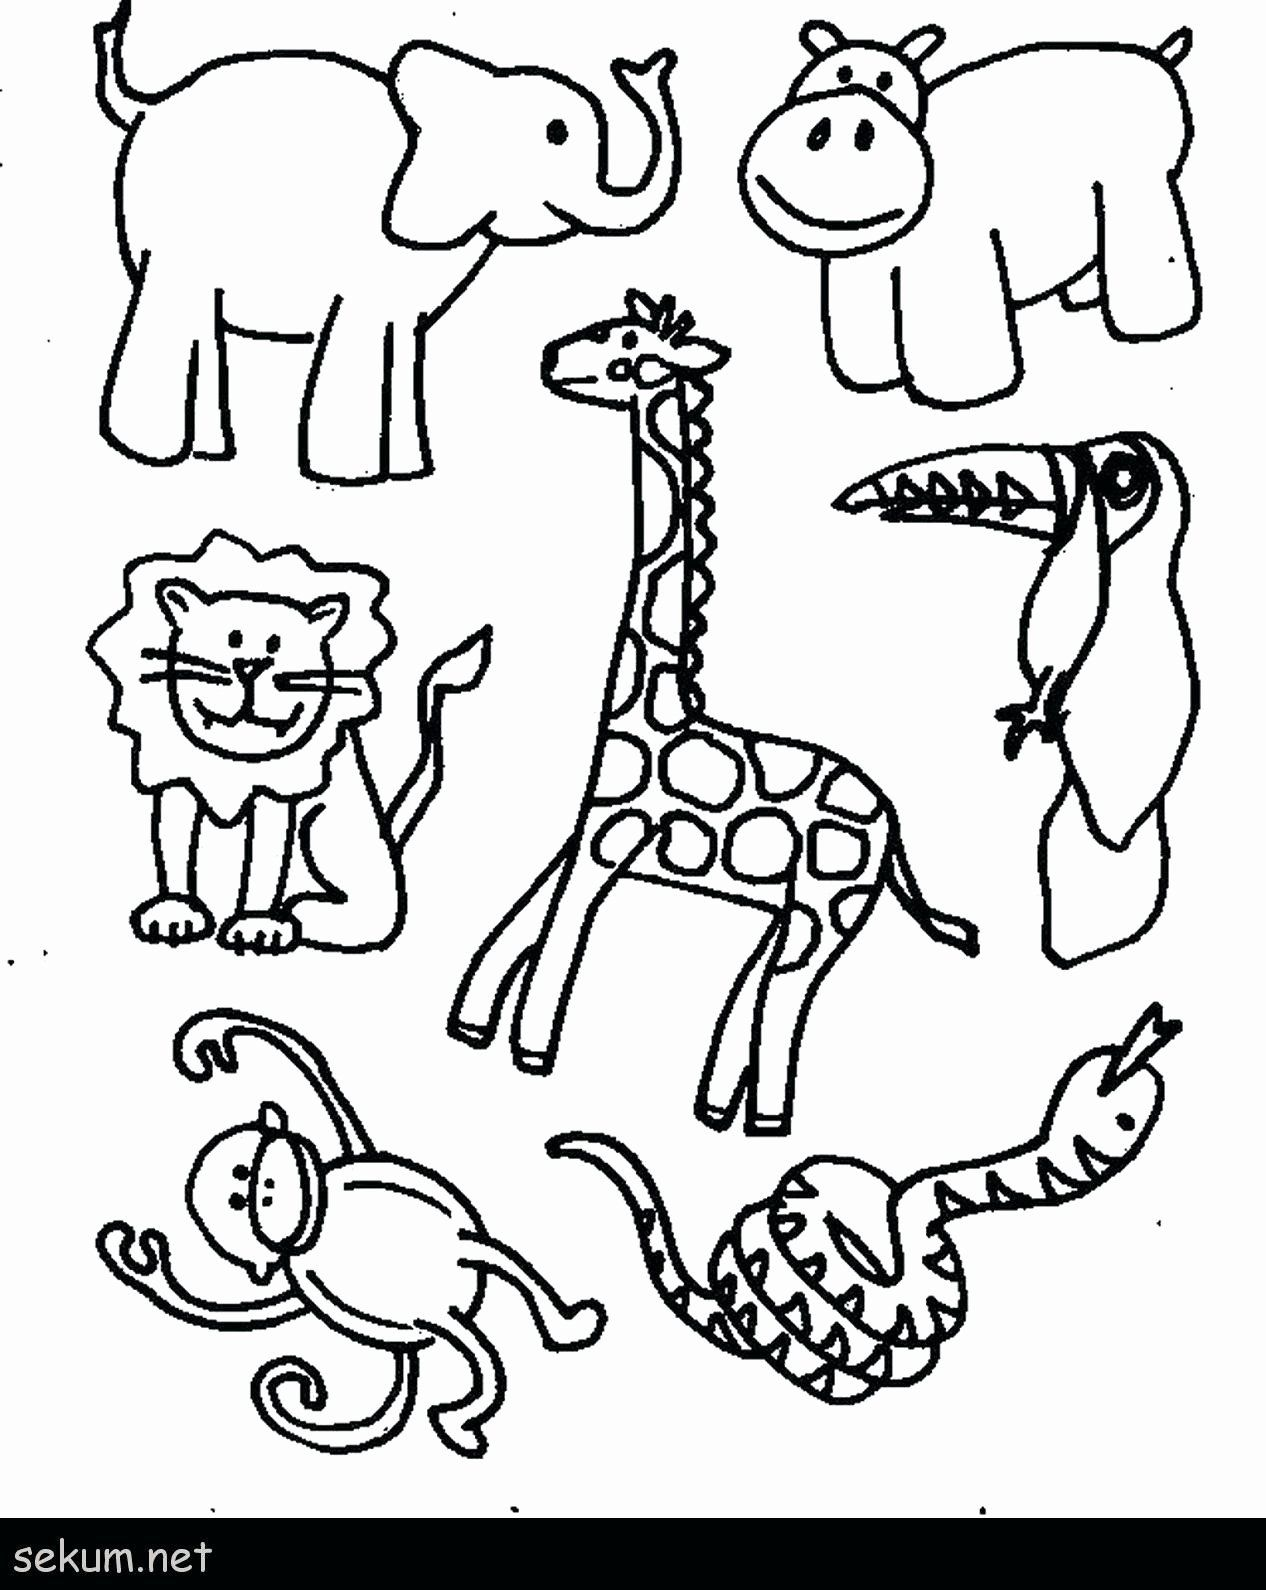 Coloring Pages For Animals In The Jungle Inspirational Safari Animal Coloring Pages Free O In 2020 Zoo Coloring Pages Zoo Animal Coloring Pages Jungle Coloring Pages